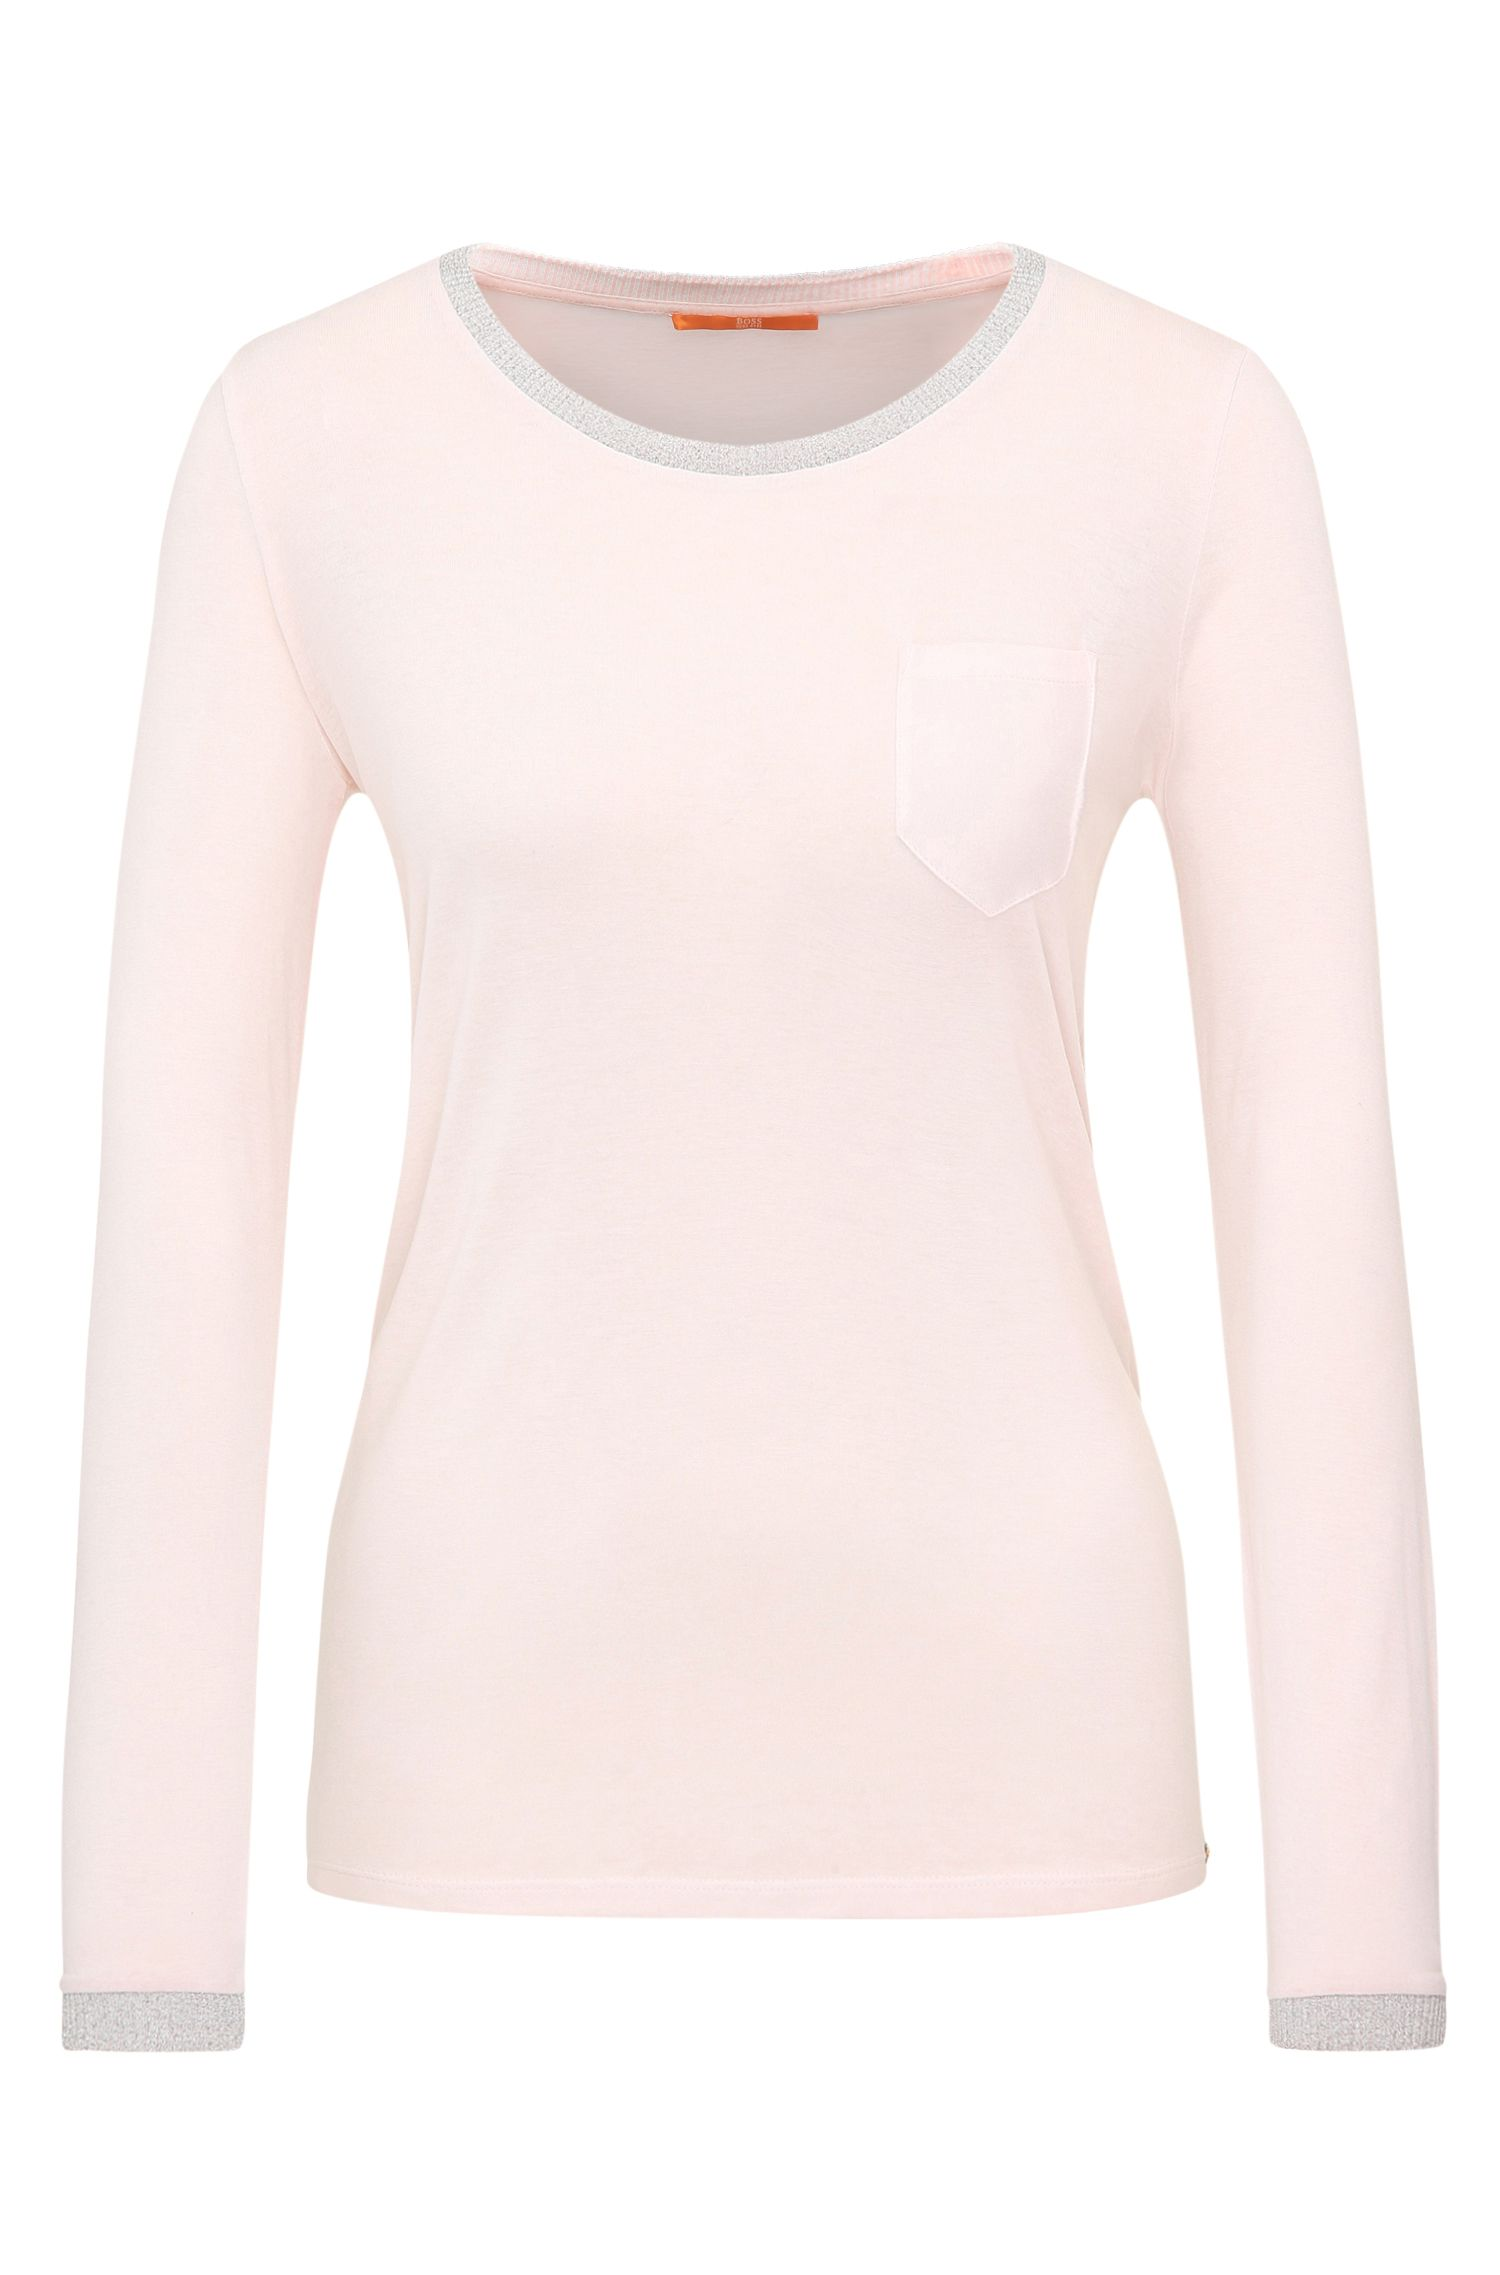 Knitted long-sleeved top in viscose with glittering hems: 'Voksi'